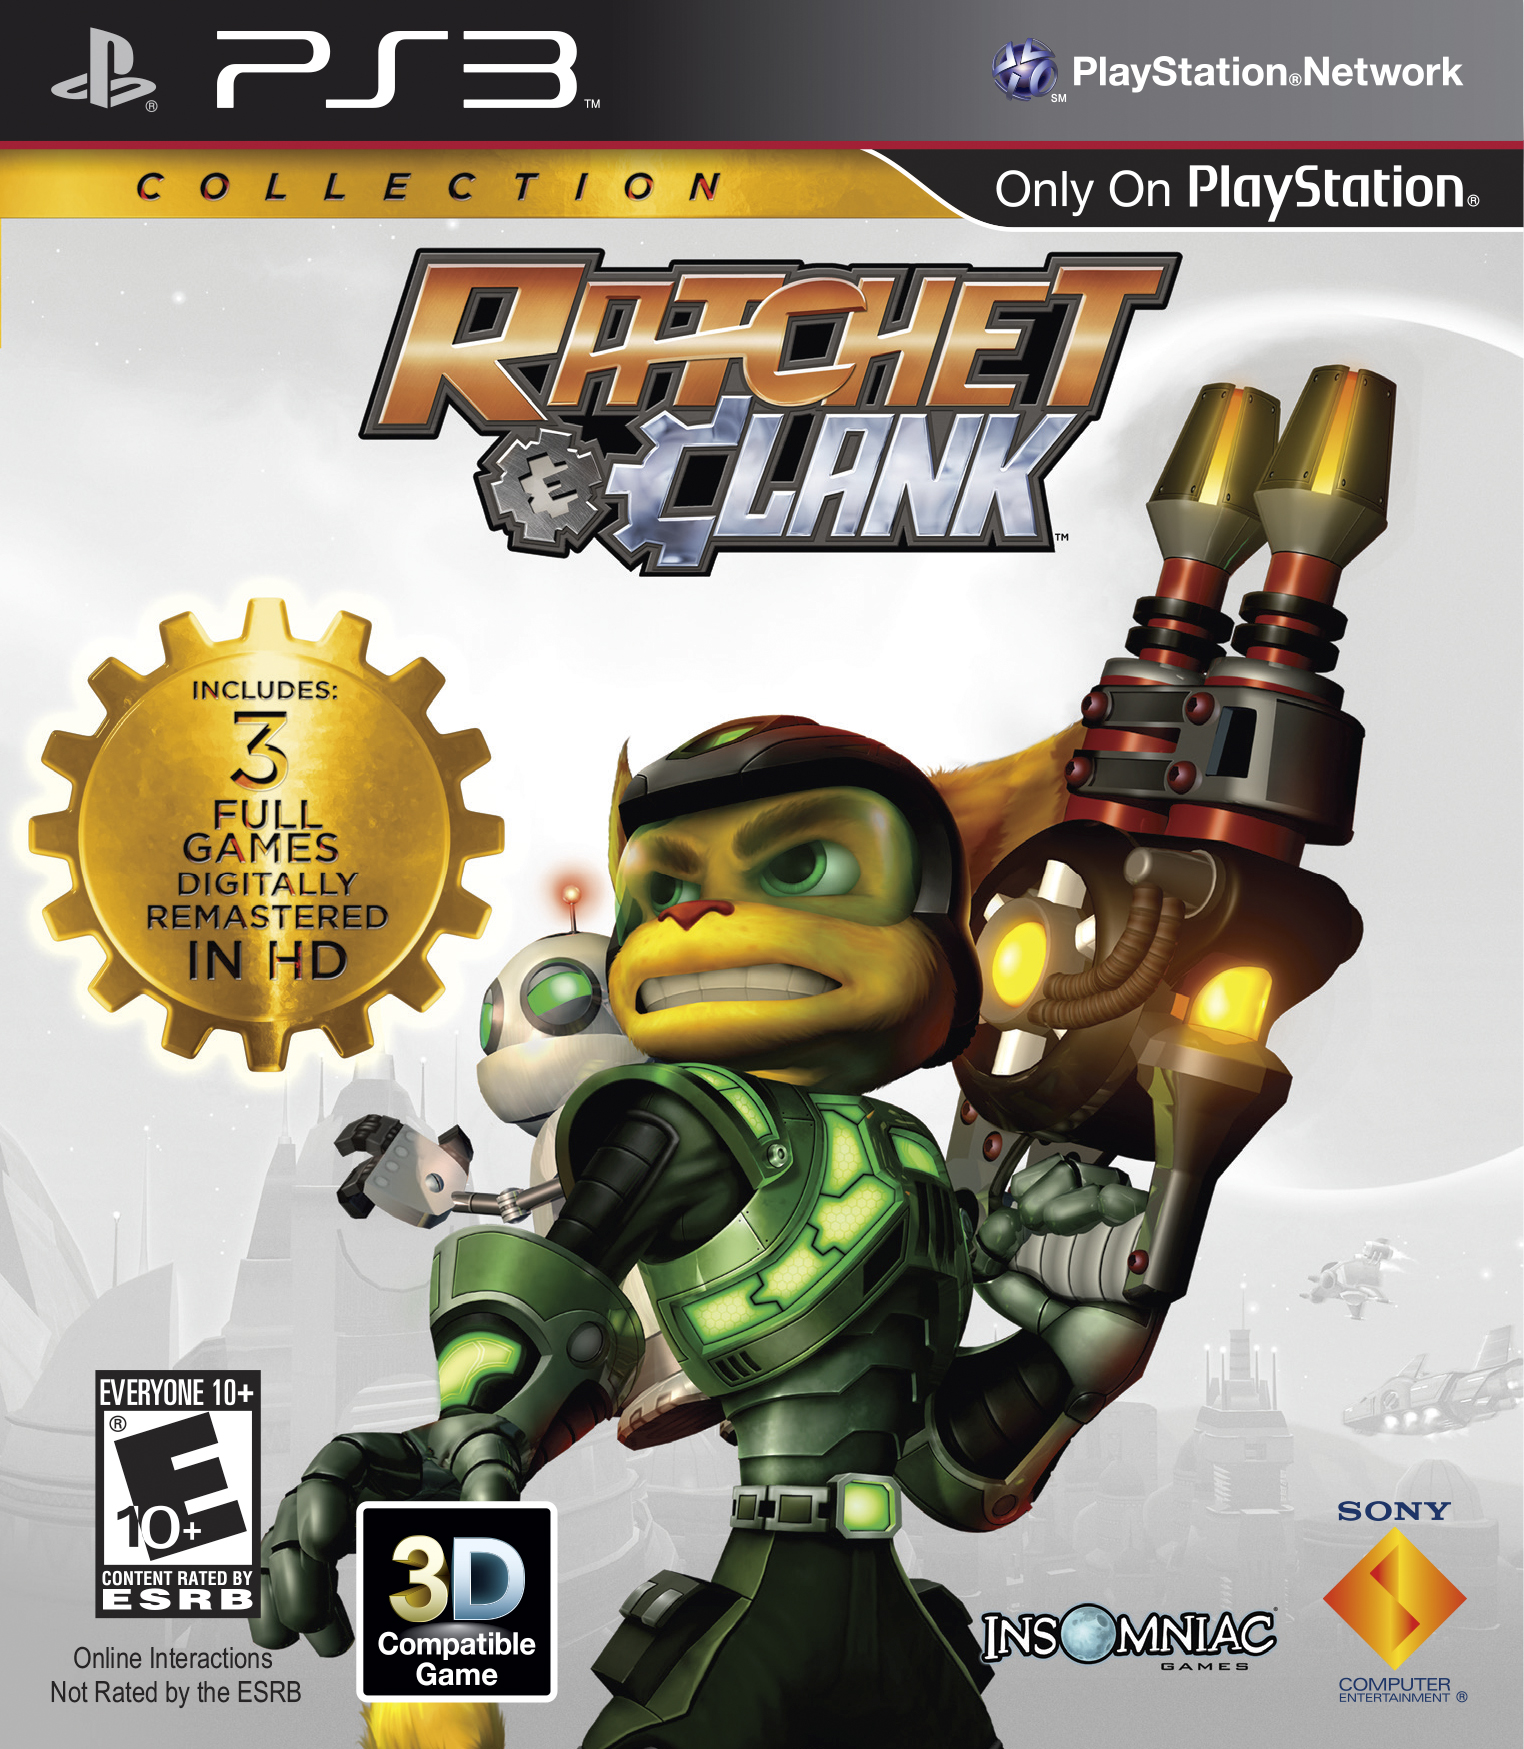 sony_collection_ratchet_and_clank